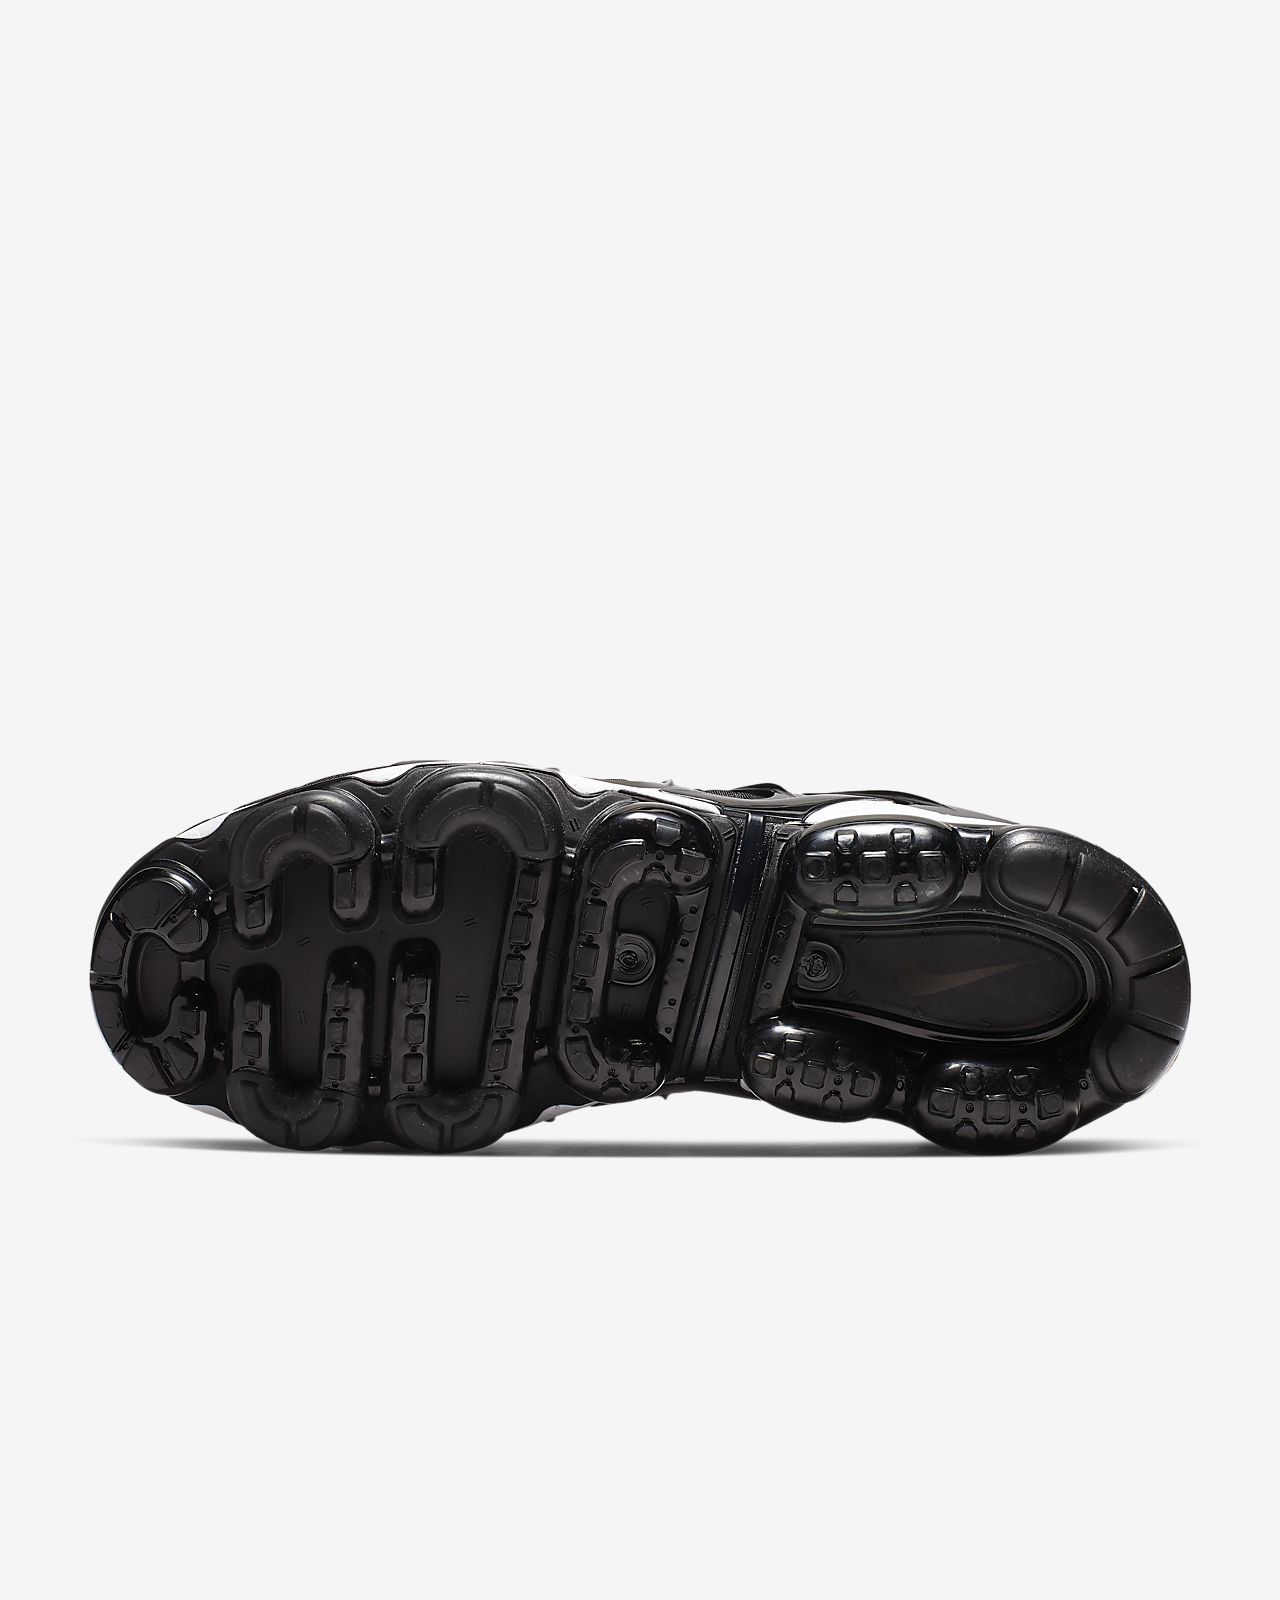 7cf50409cc9 Nike Air VaporMax Plus Men s Shoe. Nike.com CA